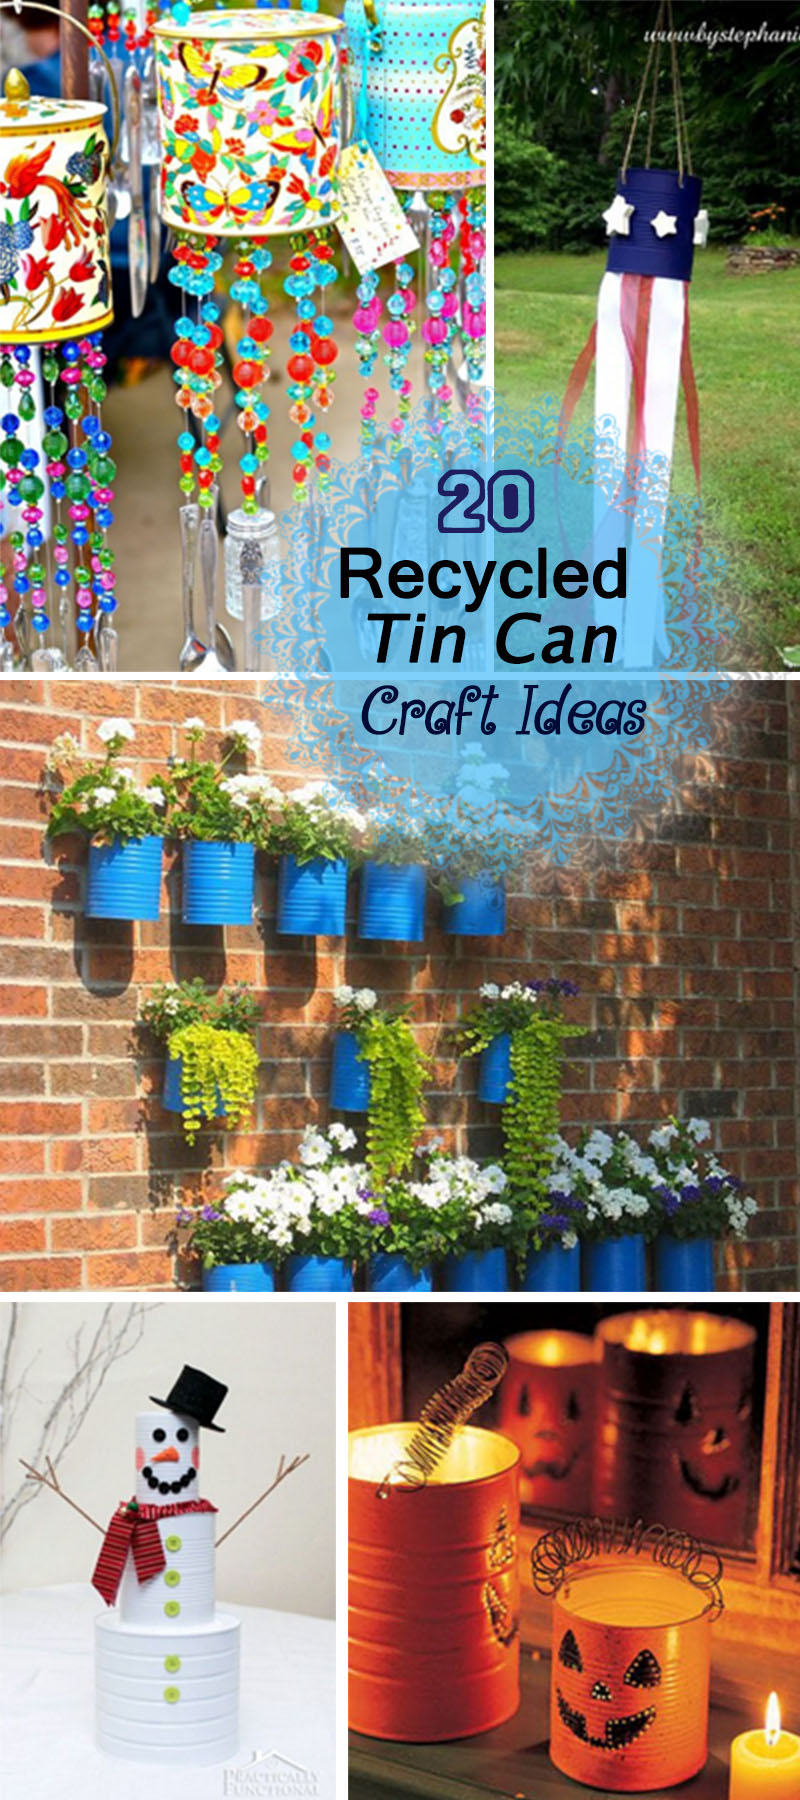 eco craft ideas 20 recycled tin can craft ideas hative 1942